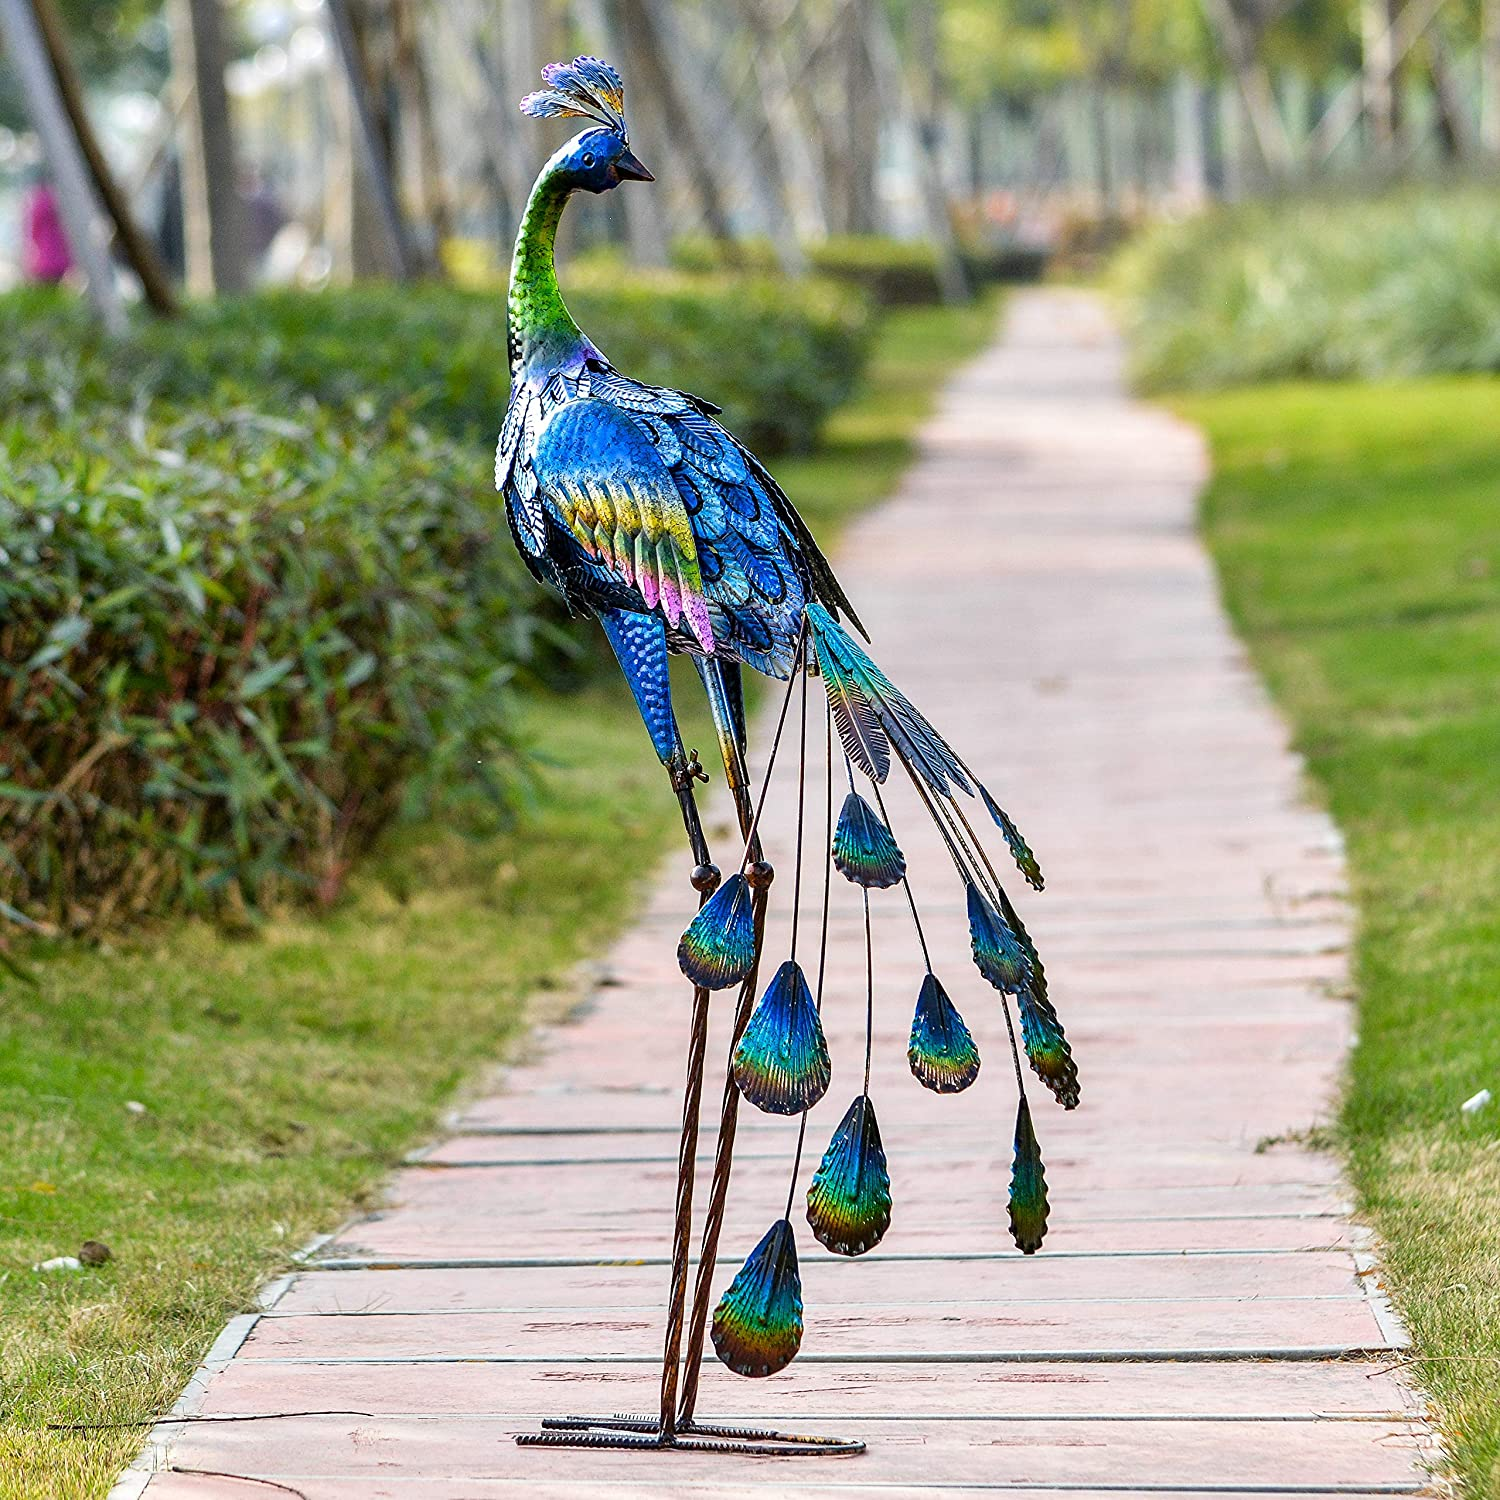 TERESA'S COLLECTIONS 35inch Metal Decorative Peacock Standing Art Garden Sculpture Decor, Garden Statue Artwork Indoor Outdoor for Backyard Porch Home Patio Lawn Decorations